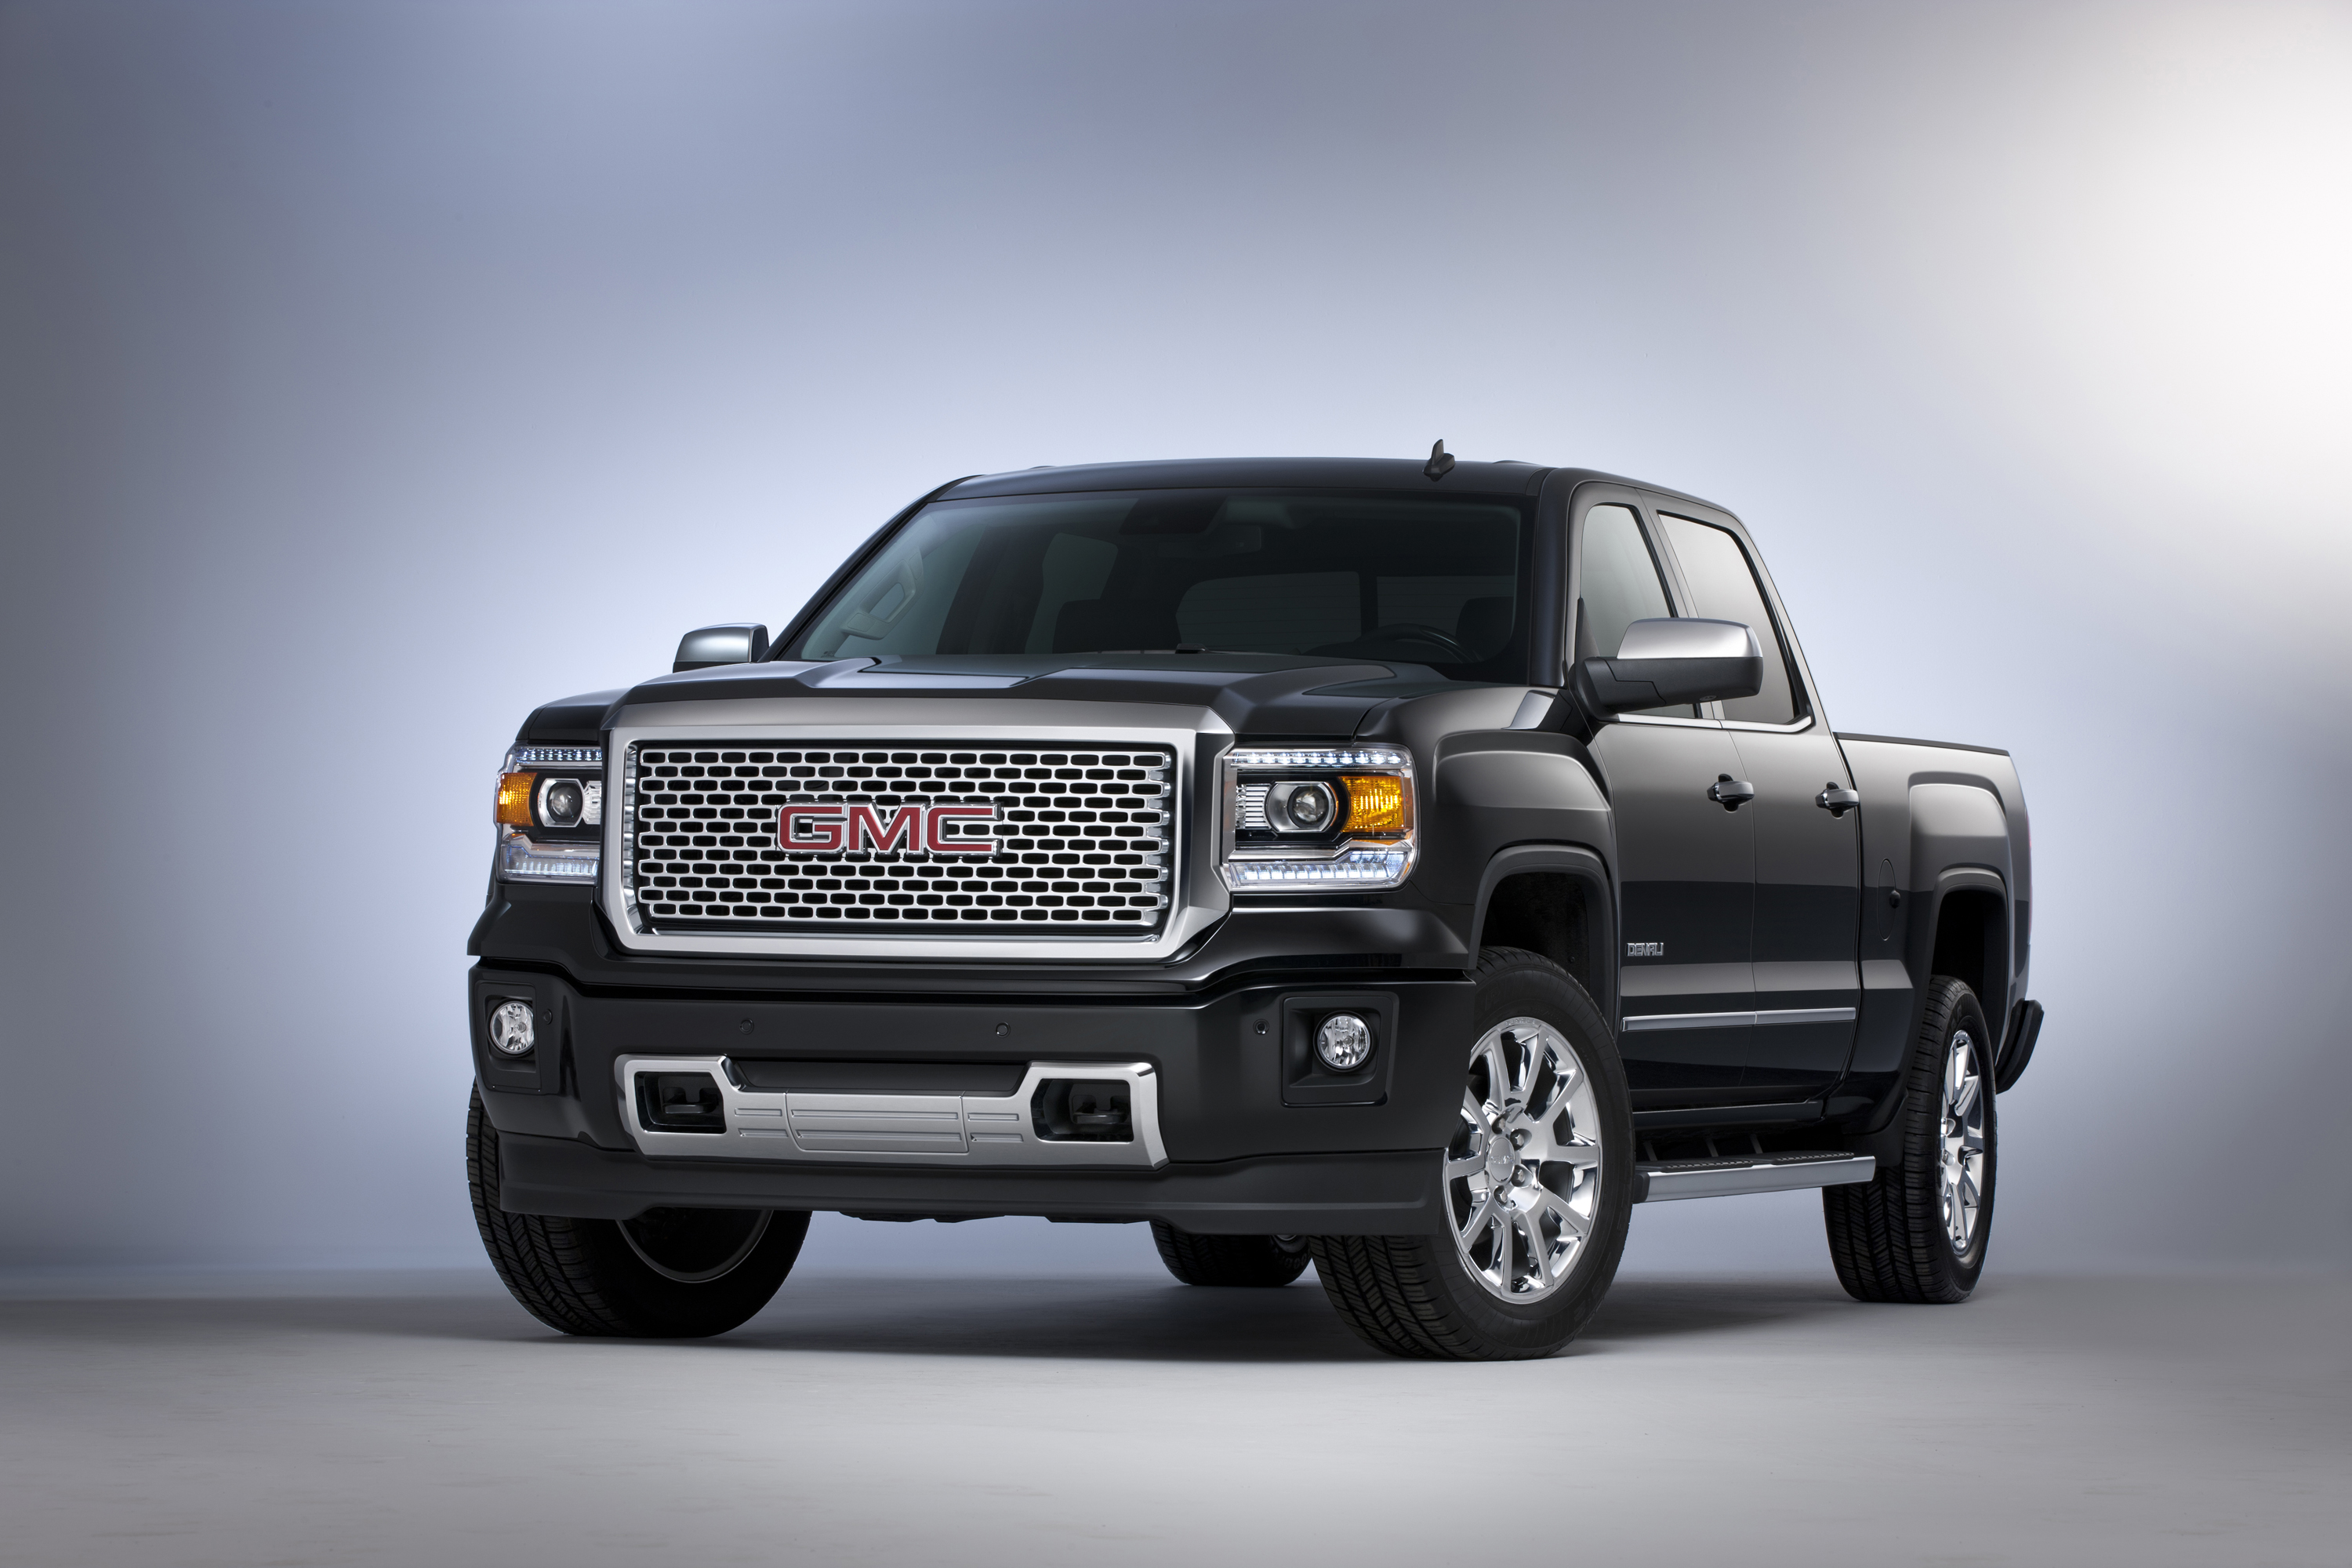 pairs sale nc studio threequarter and sierra for vehicles content en luxury in capability detail news high tech media us denali front trucks gmc may pages